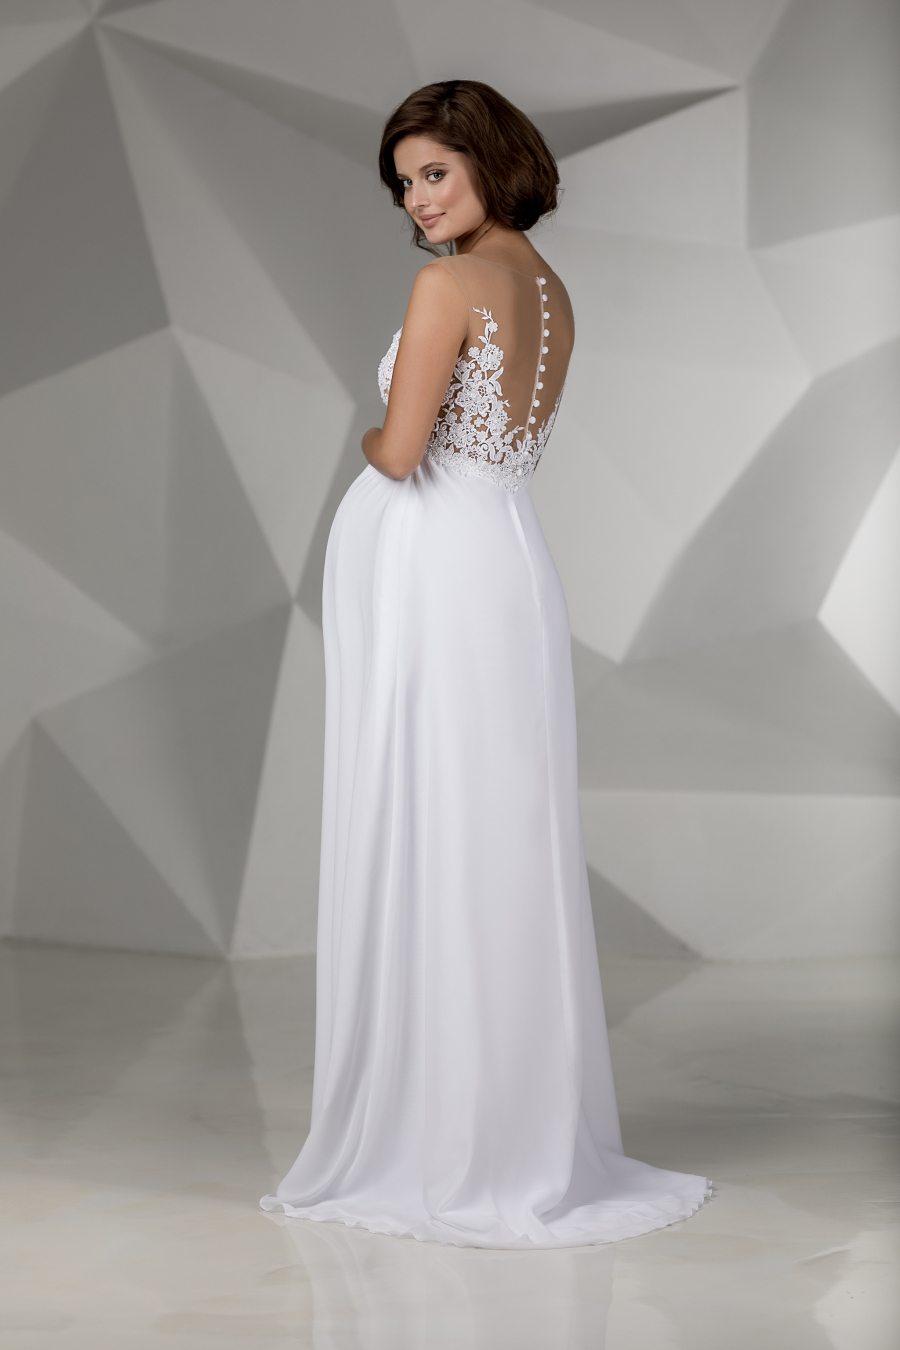 maternity wedding dress Carolina